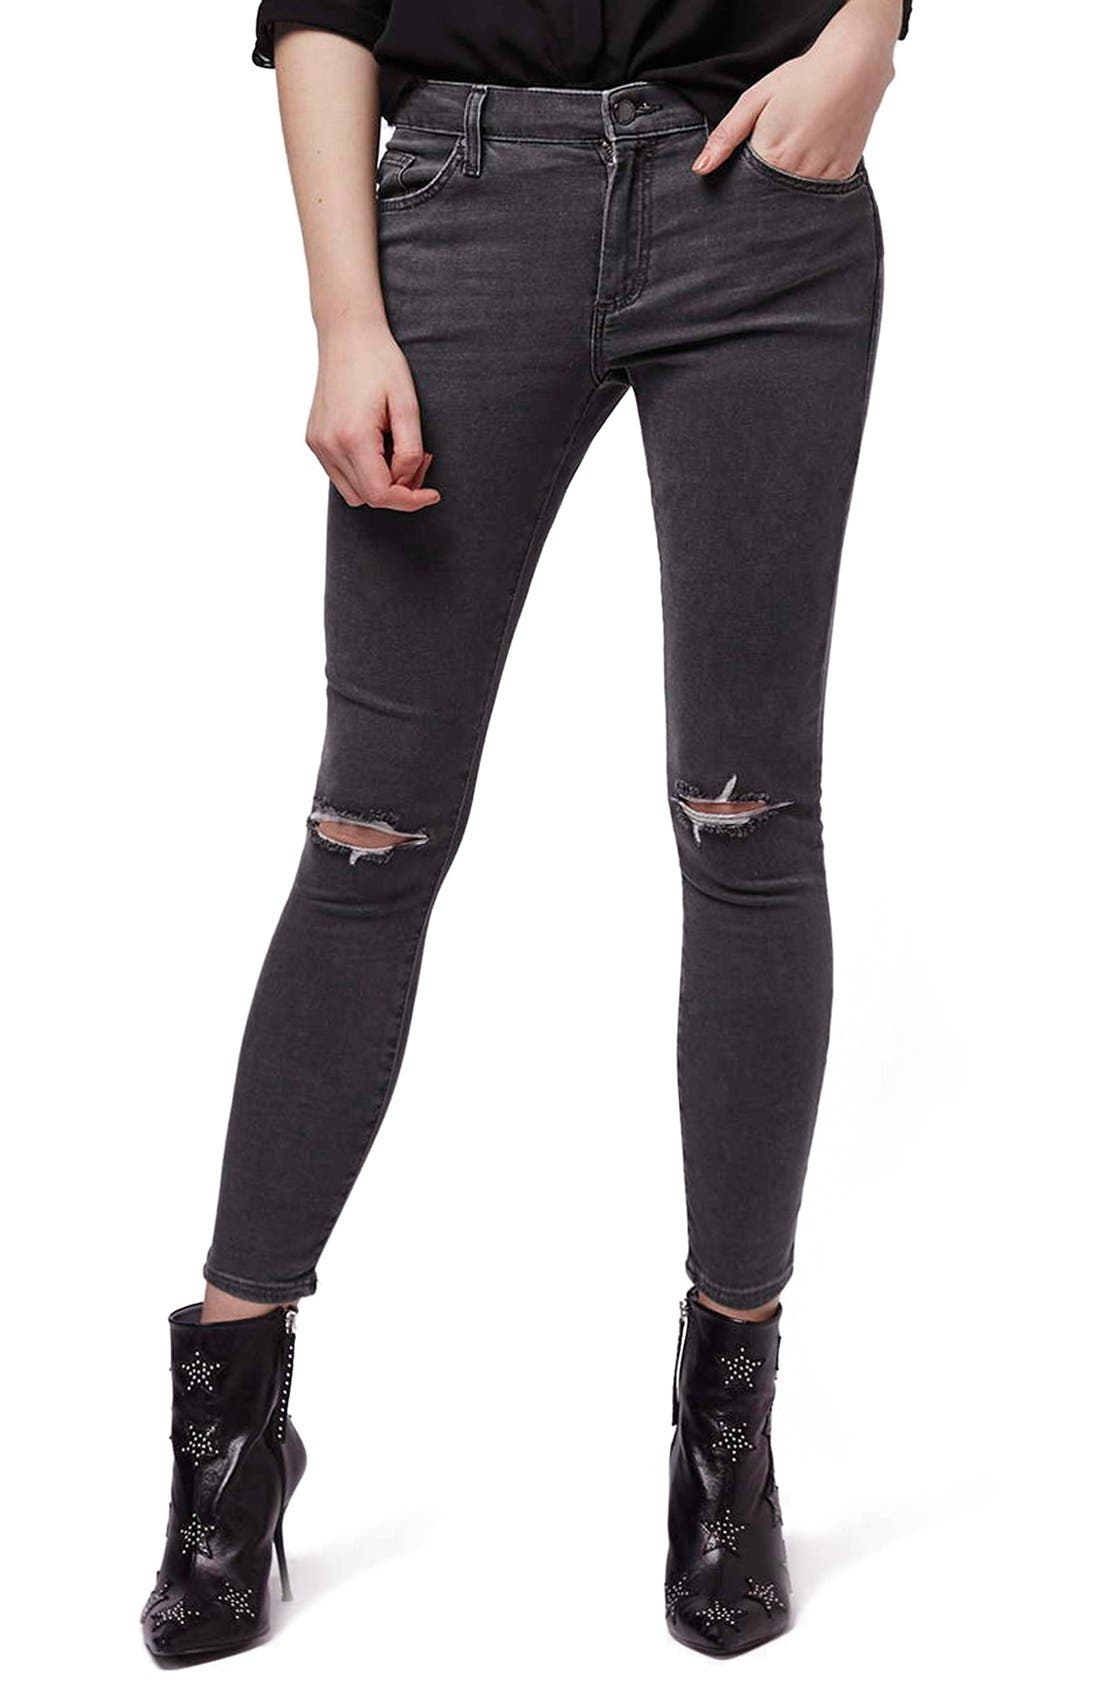 Alternate Image 1 Selected - Topshop 'Leigh' Ripped Skinny Jeans (Petite)